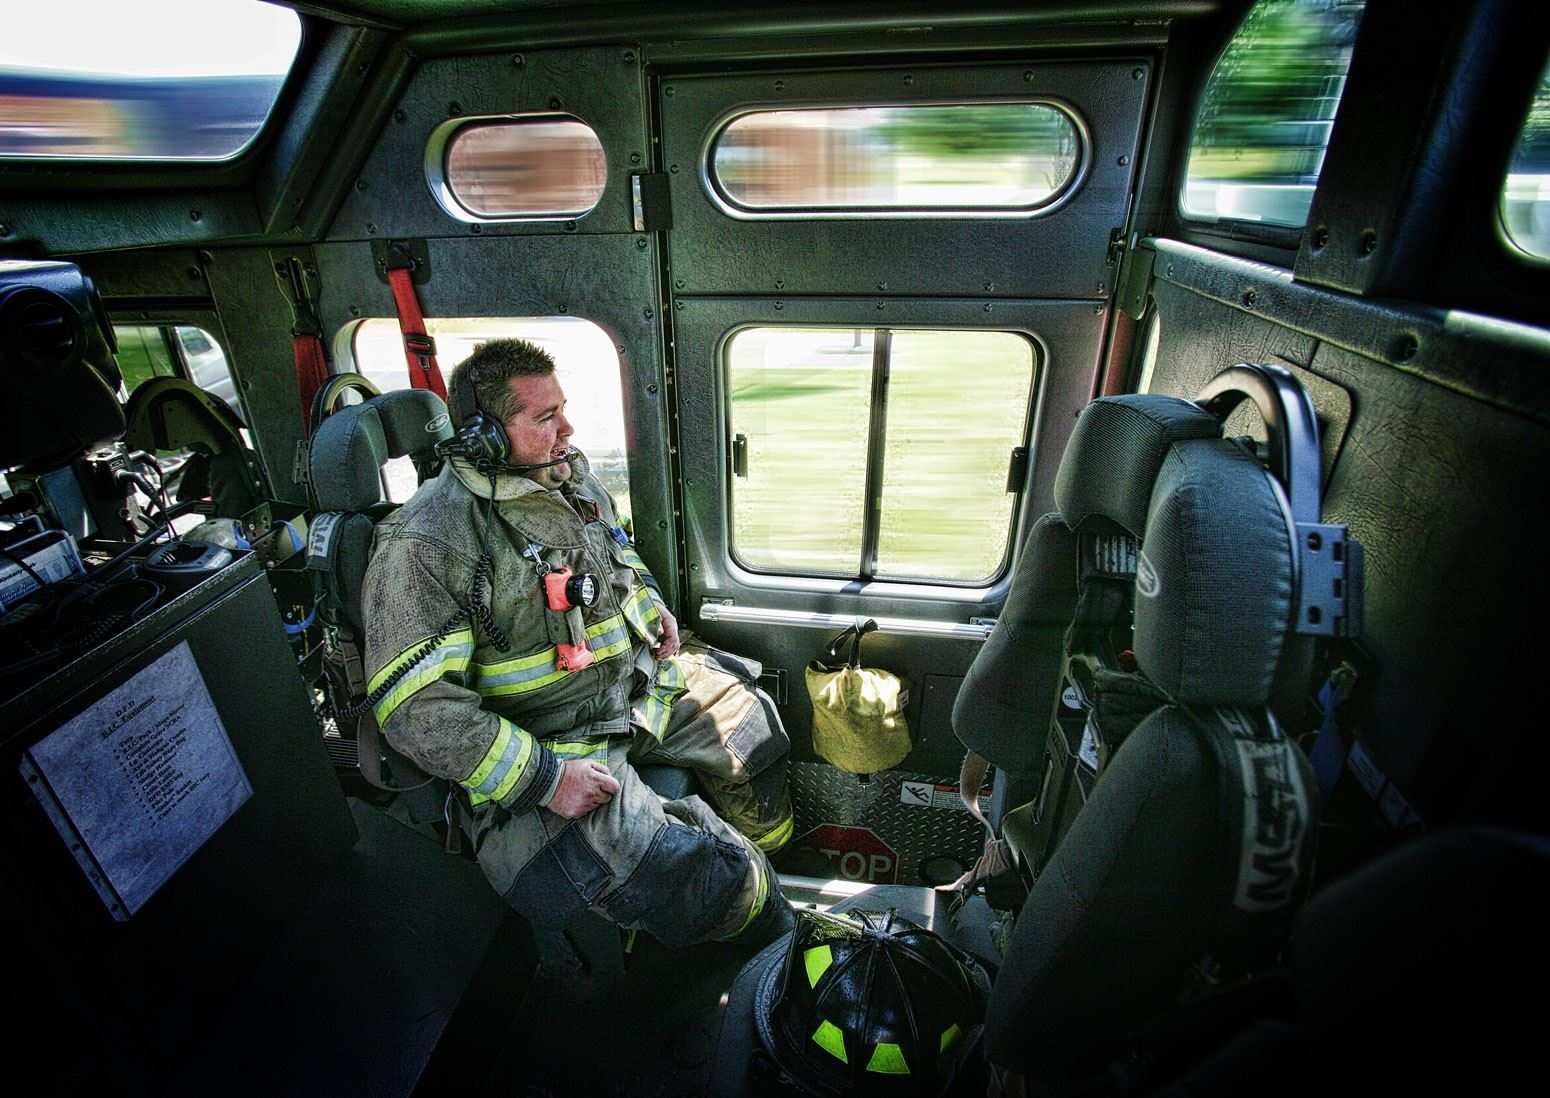 Firefighter Inside Moving Fire Truck